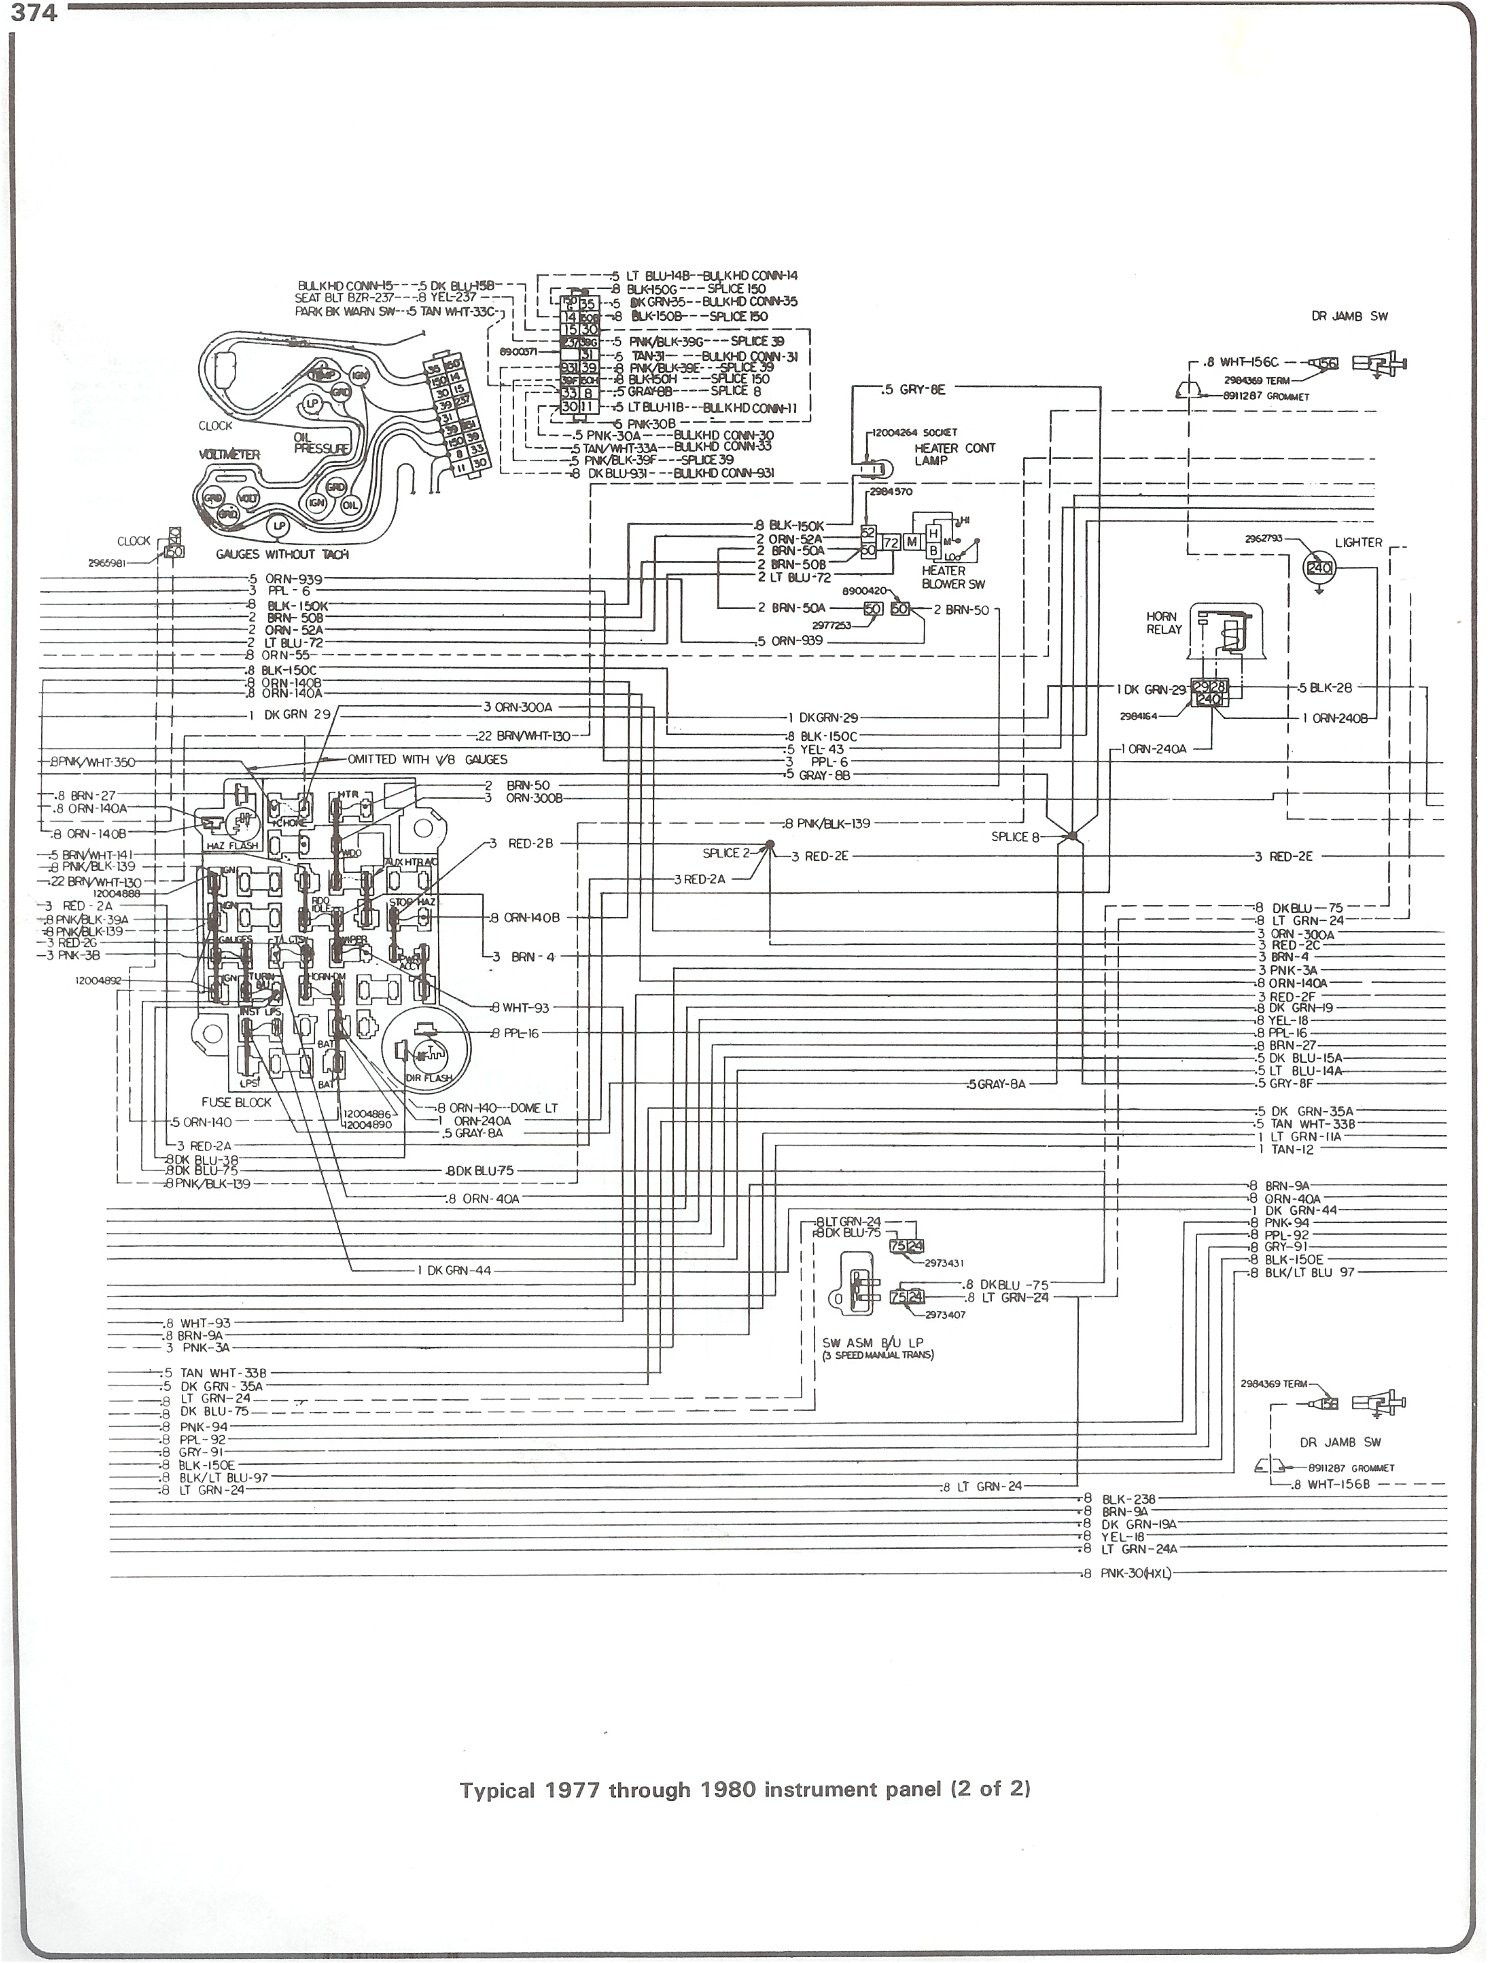 1986 Chevy C10 Wiring Diagram Trusted Wiring Diagram